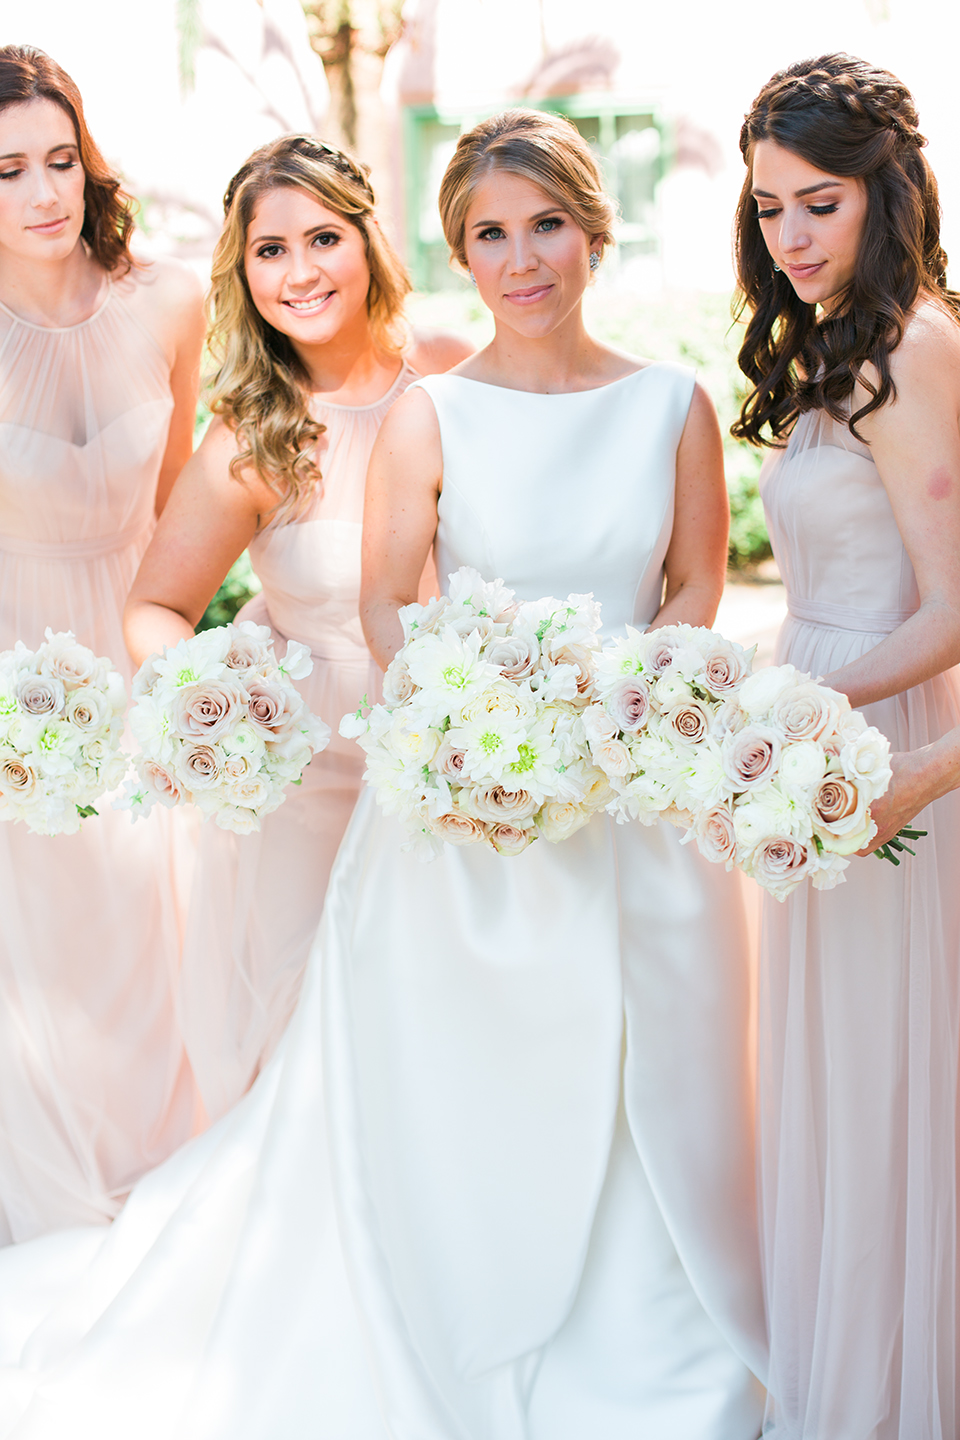 Bride with her bridesmaids at The Vinoy in St. Pete, Florida | Debra Eby Photography Co.